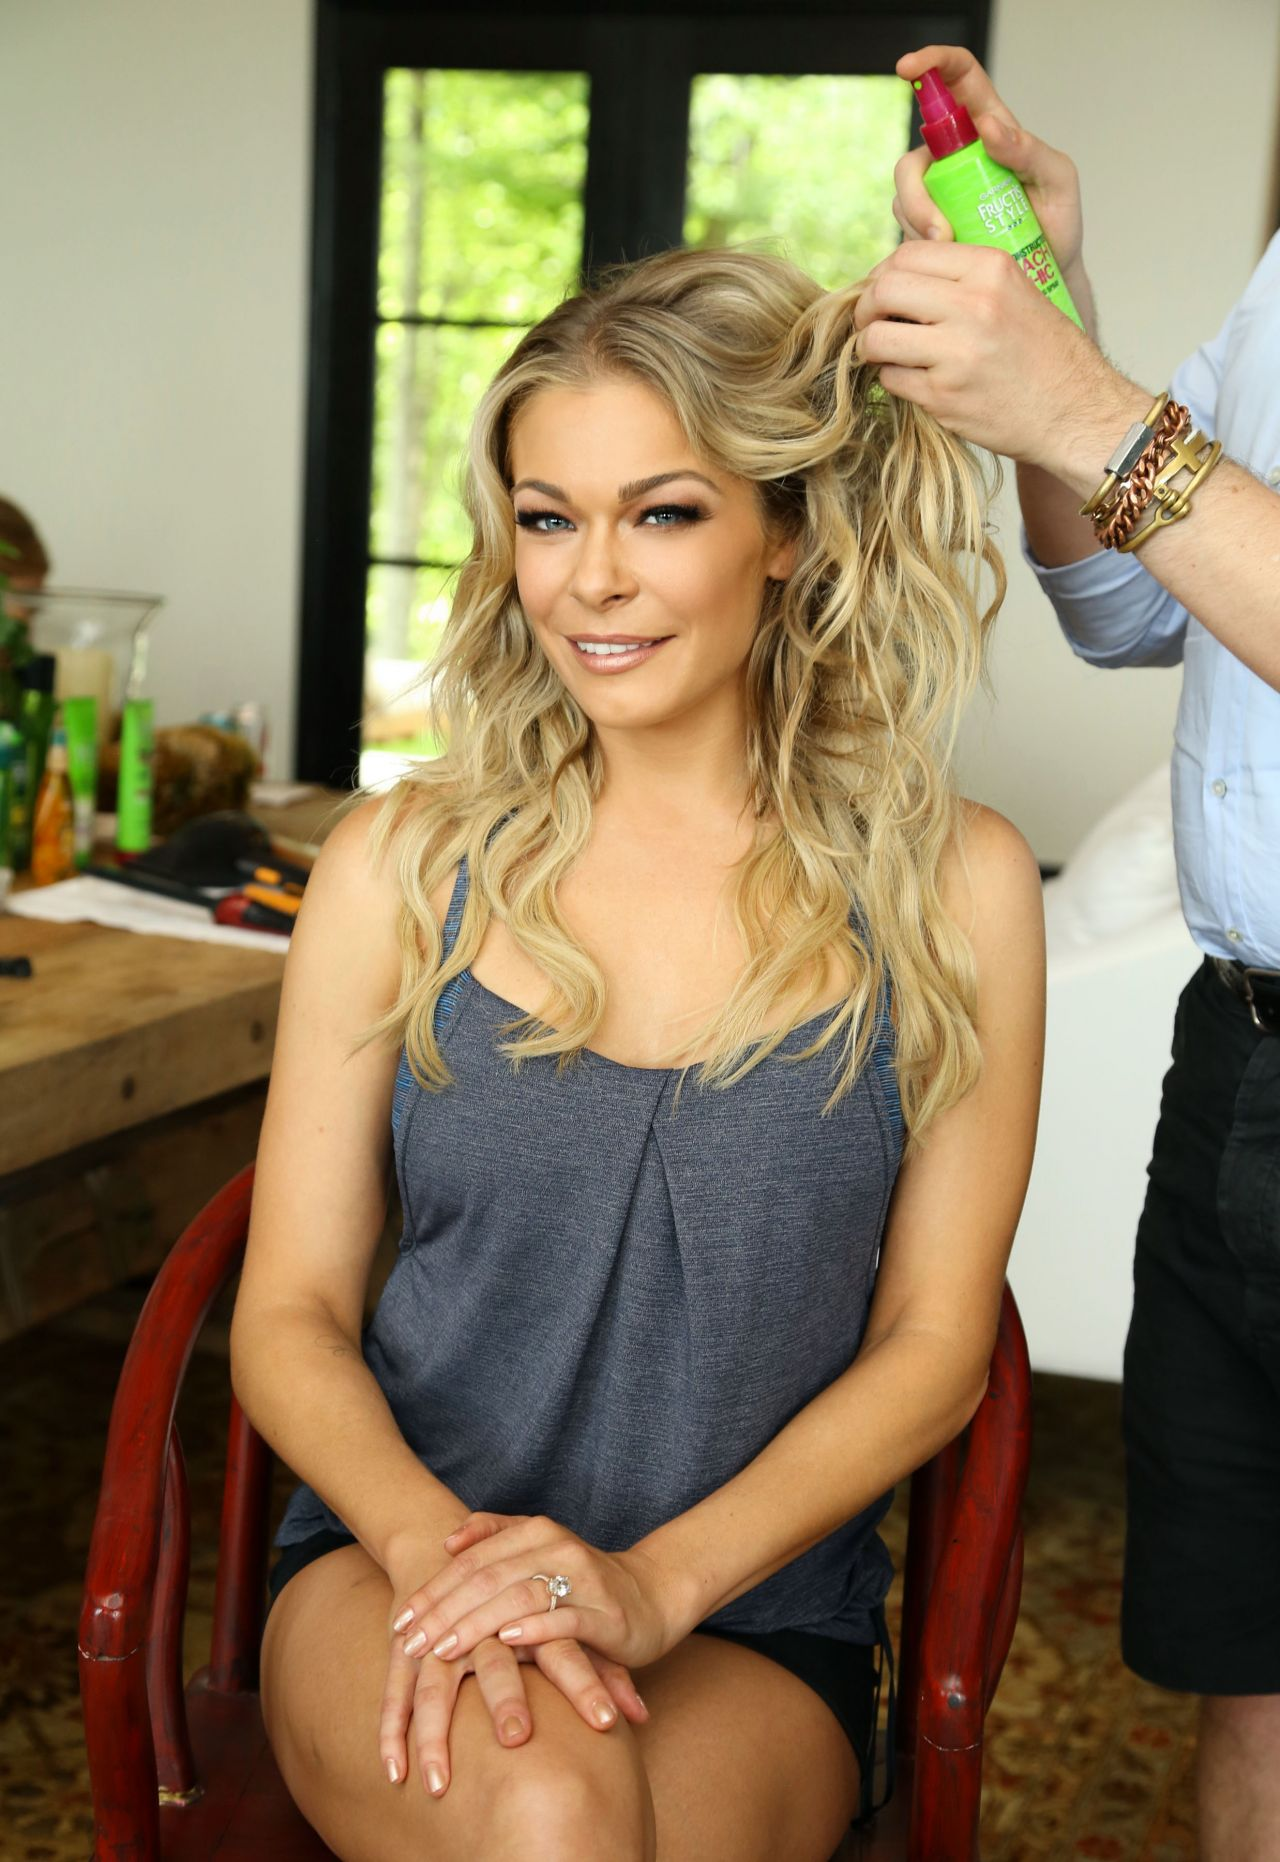 LeAnn Rimes Hair Style Getting Dolled Up At Home For The